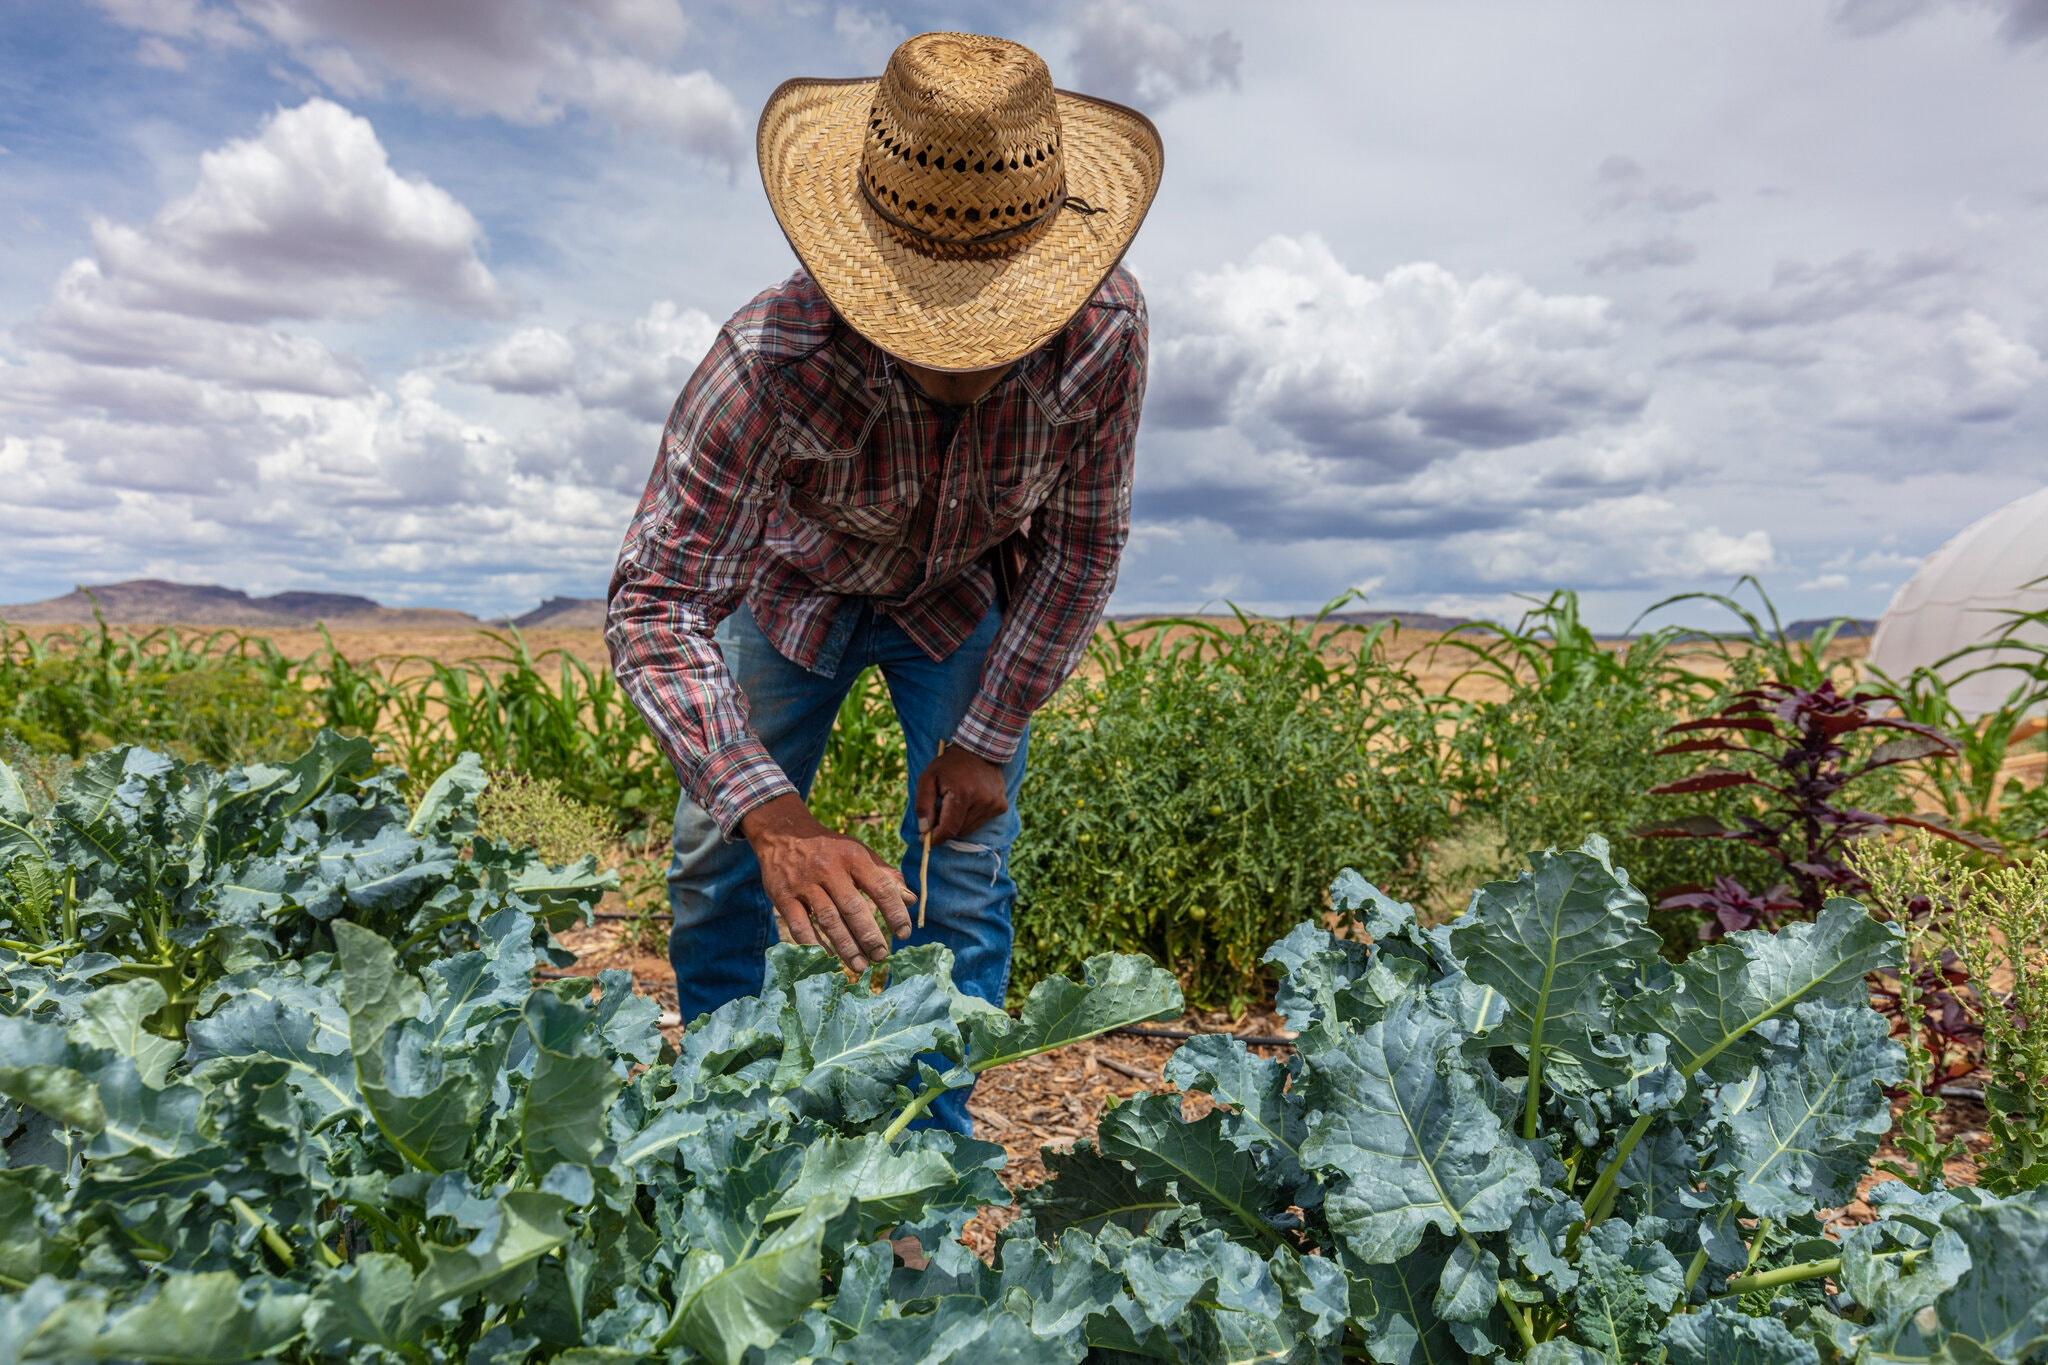 Artie Yazzie grows produce for his community in the Arizona section of the Navajo Nation. The determination of growers and gardeners like him keeps the food sovereignty movement alive.Credit...John Burcham for The New York Times